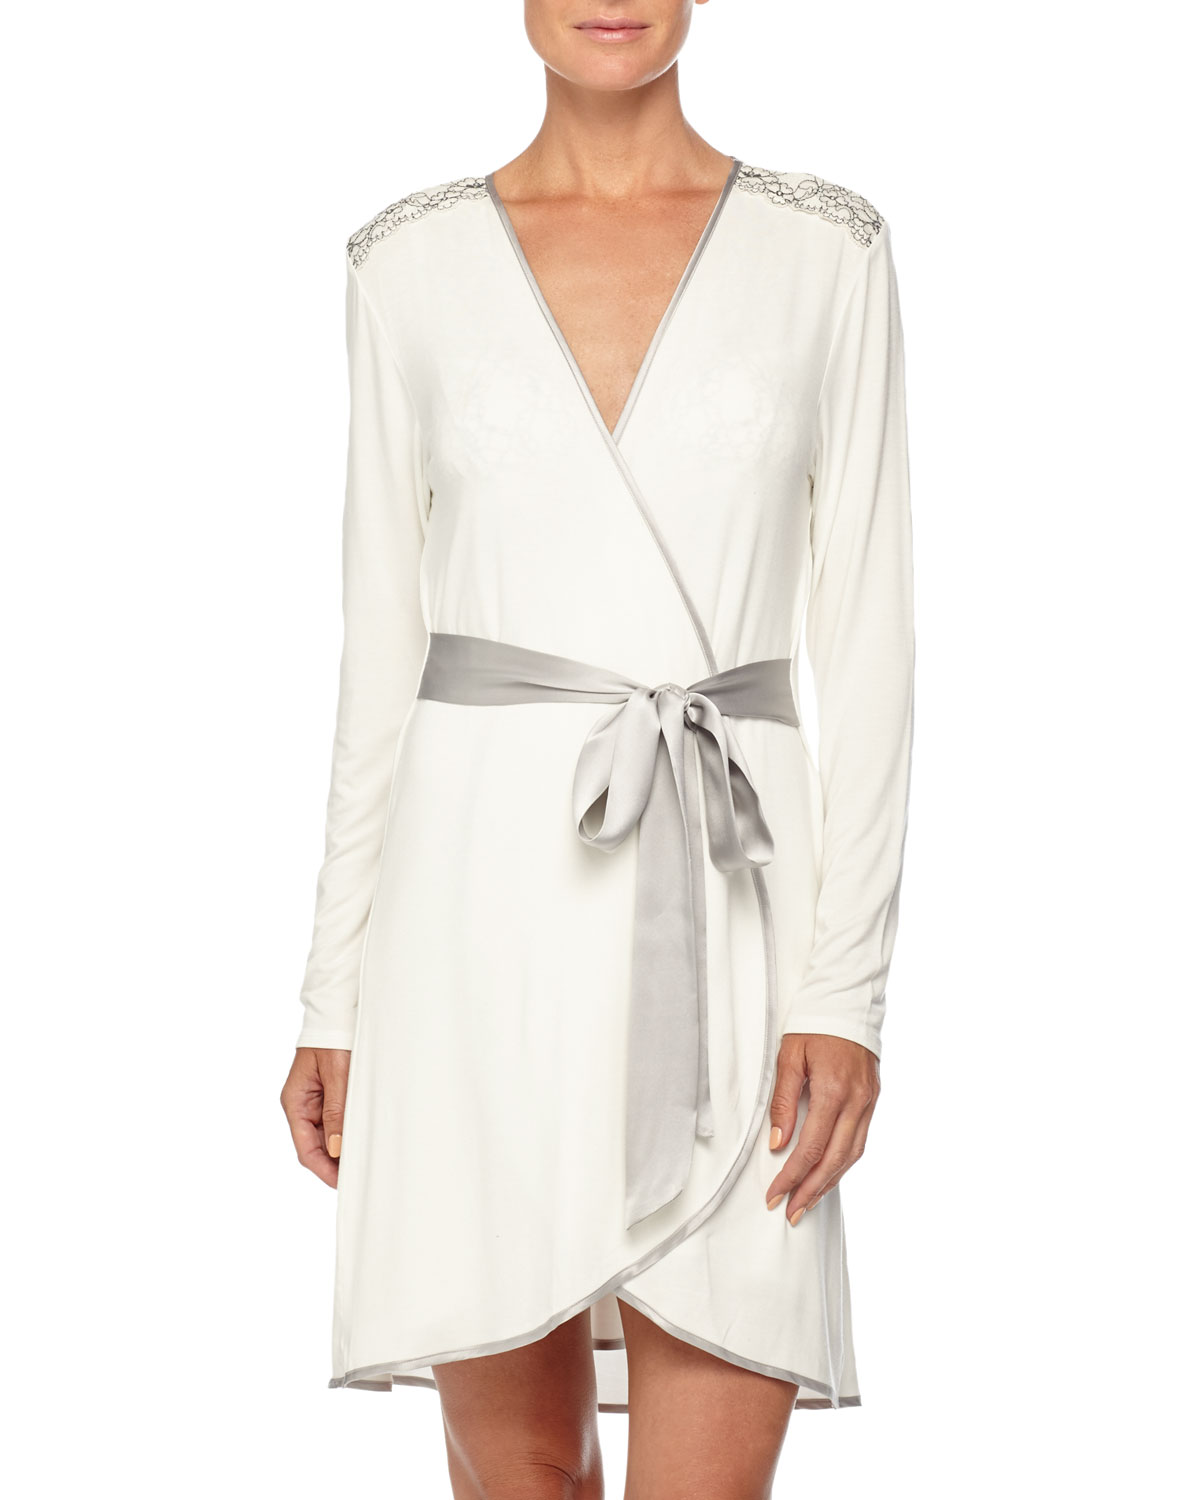 Autumn Bride Lace Short Robe, Ivory/Silver